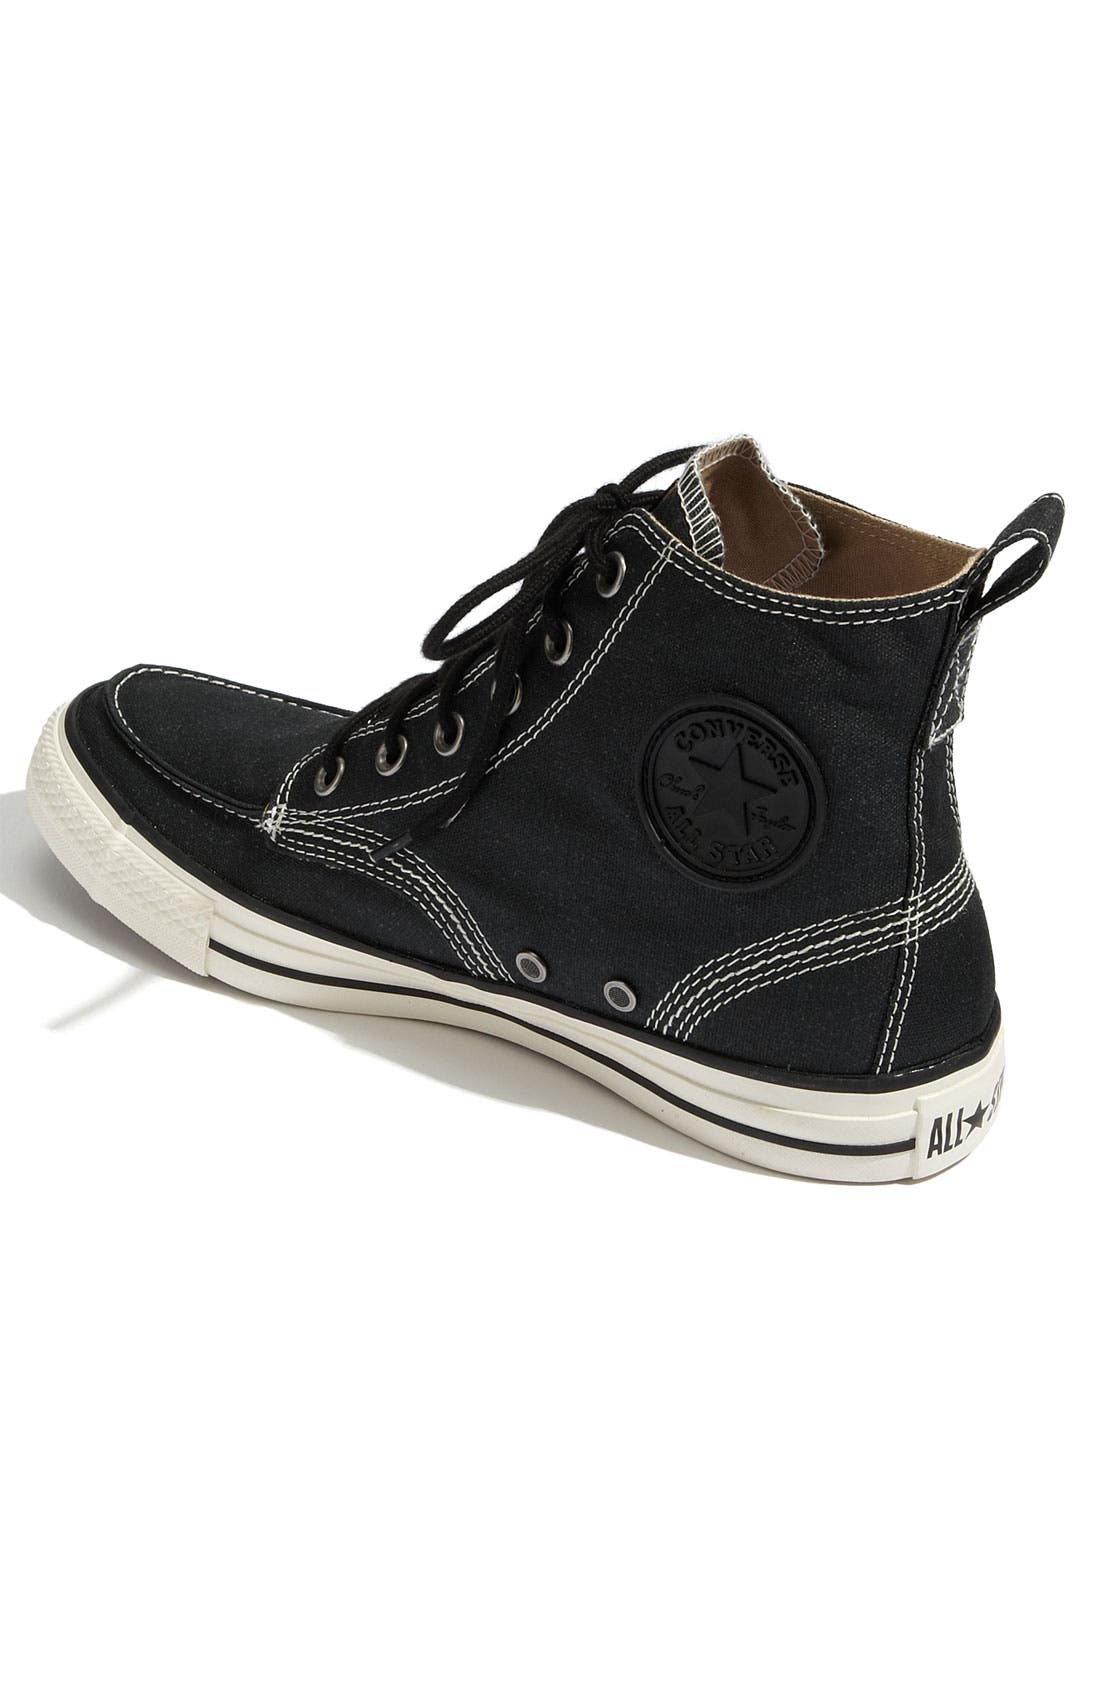 Chuck Taylor<sup>®</sup> 'Classic' Canvas Boot,                             Alternate thumbnail 4, color,                             006